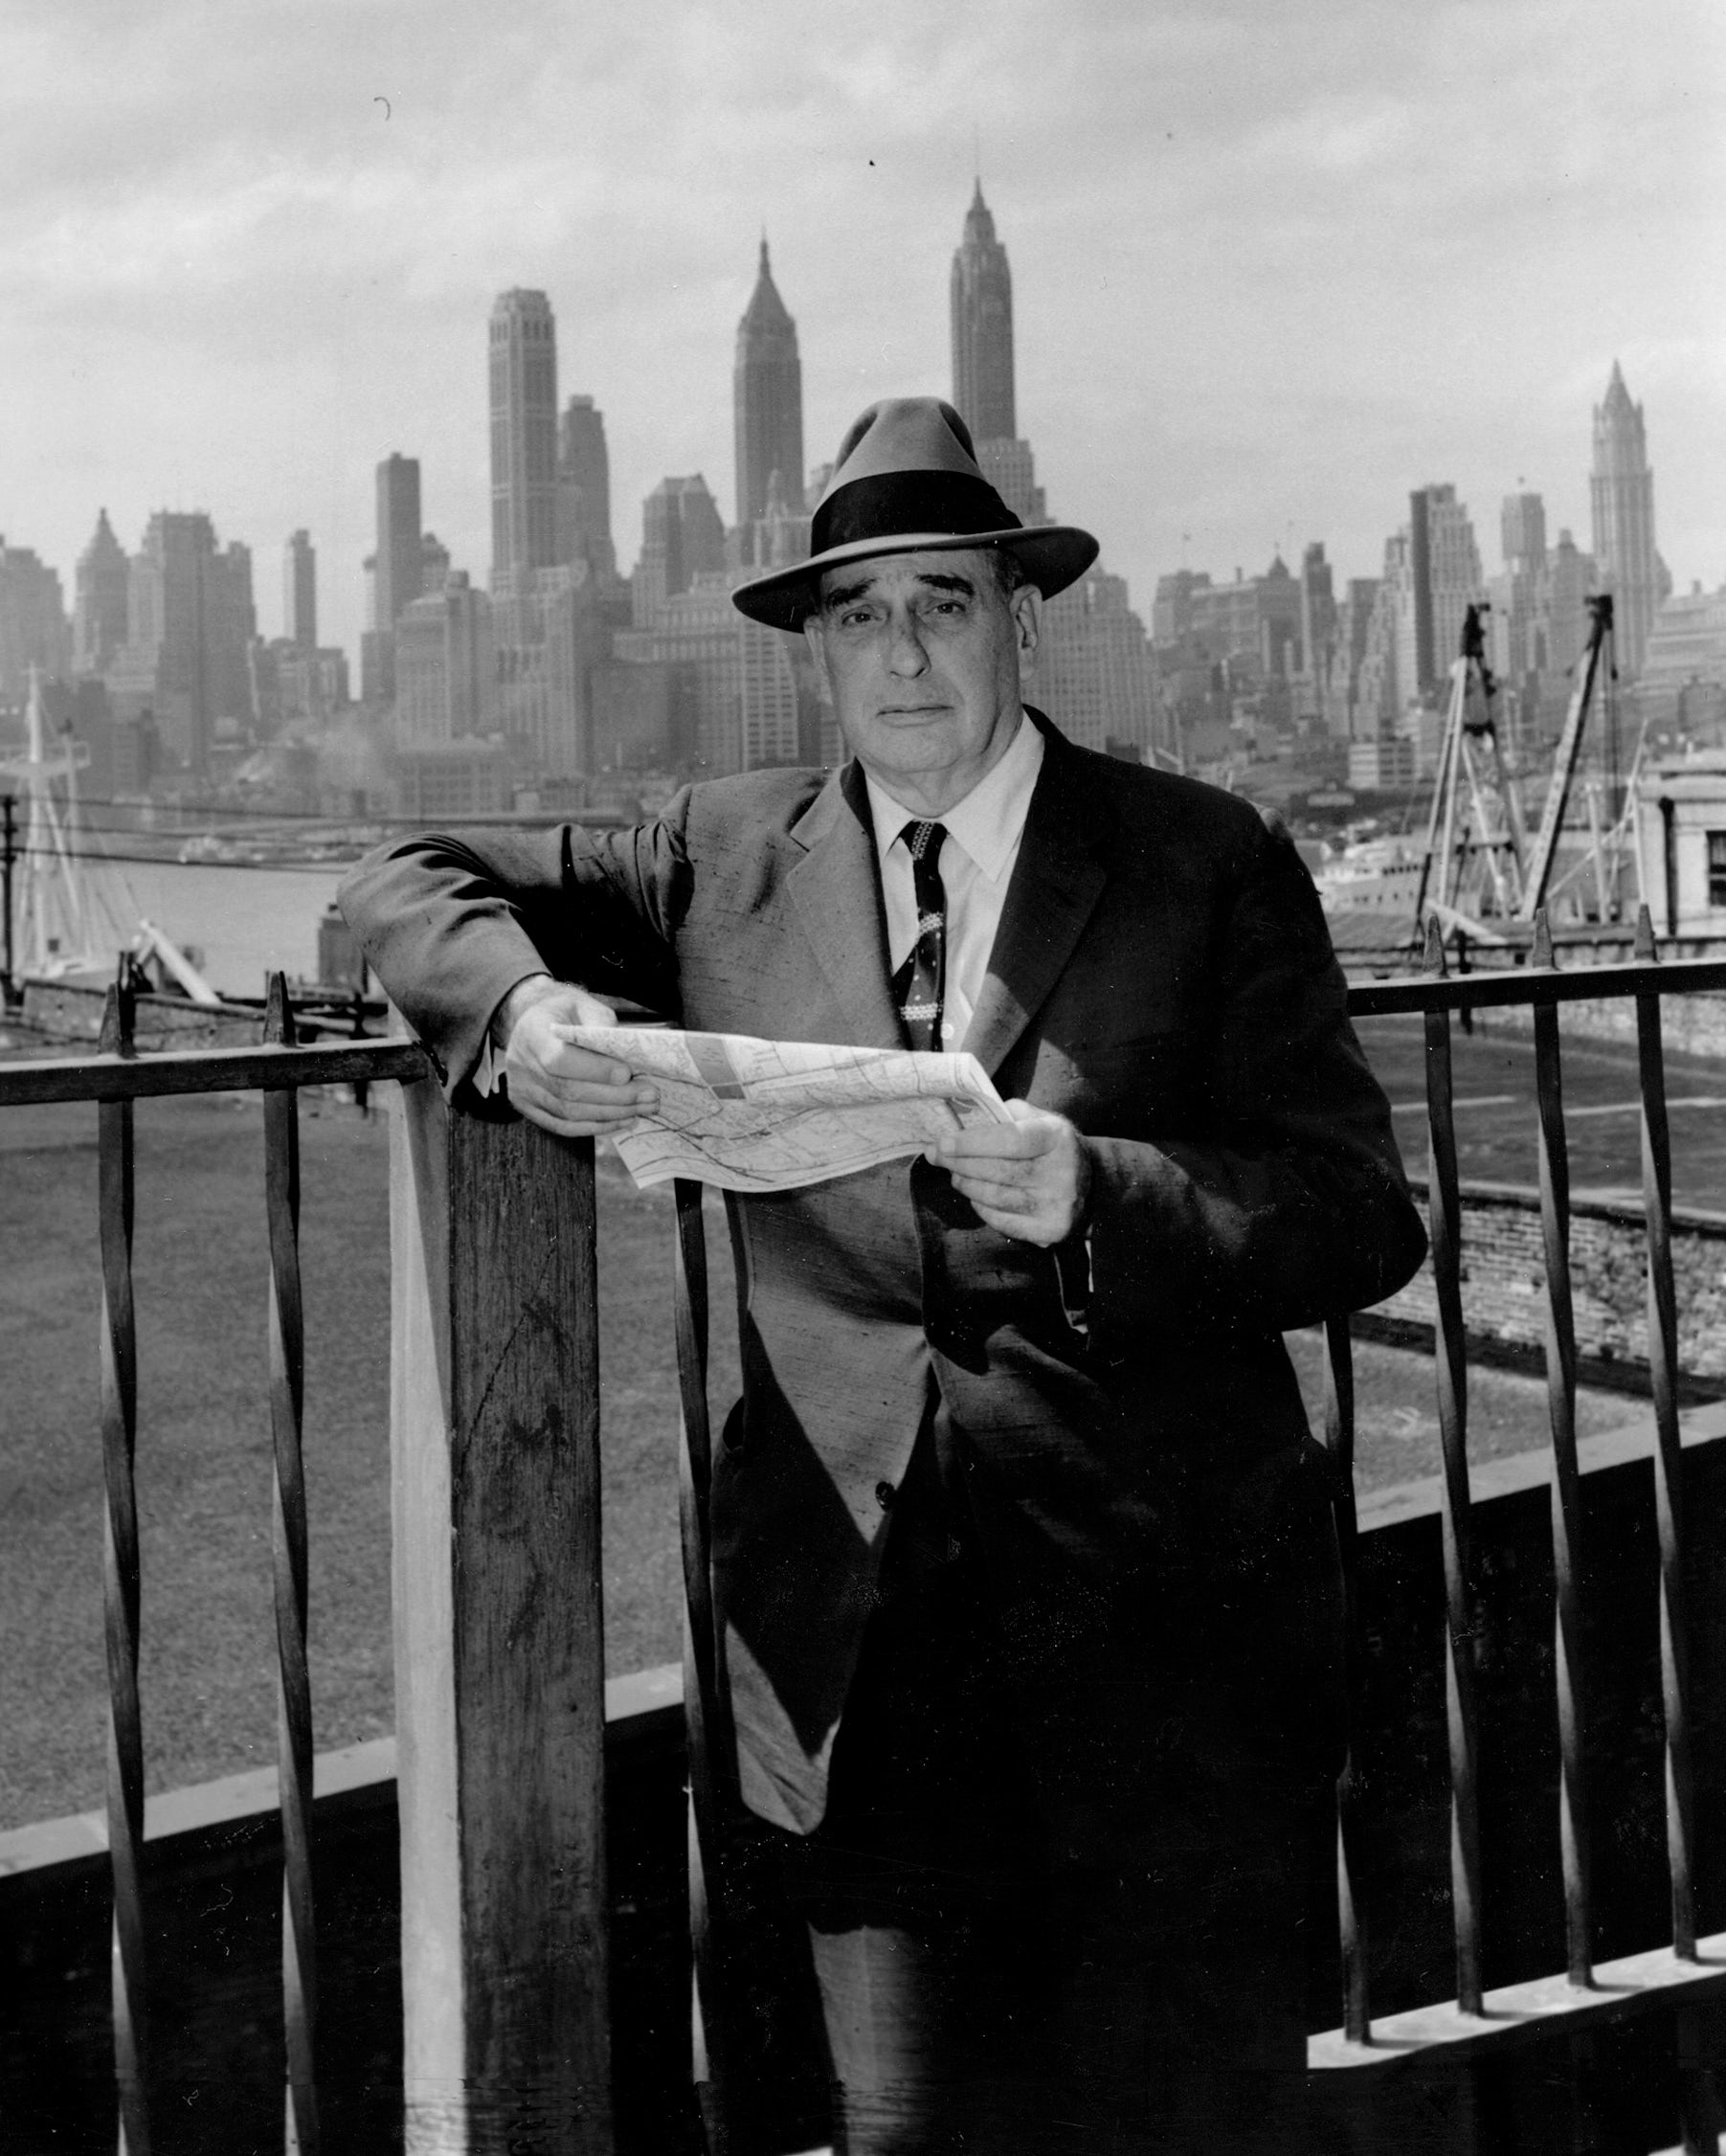 An almost affable Robert Moses  source:  https://www.theguardian.com/cities/2016/apr/28/story-cities-32-new-york-jane-jacobs-robert-moses#img-2